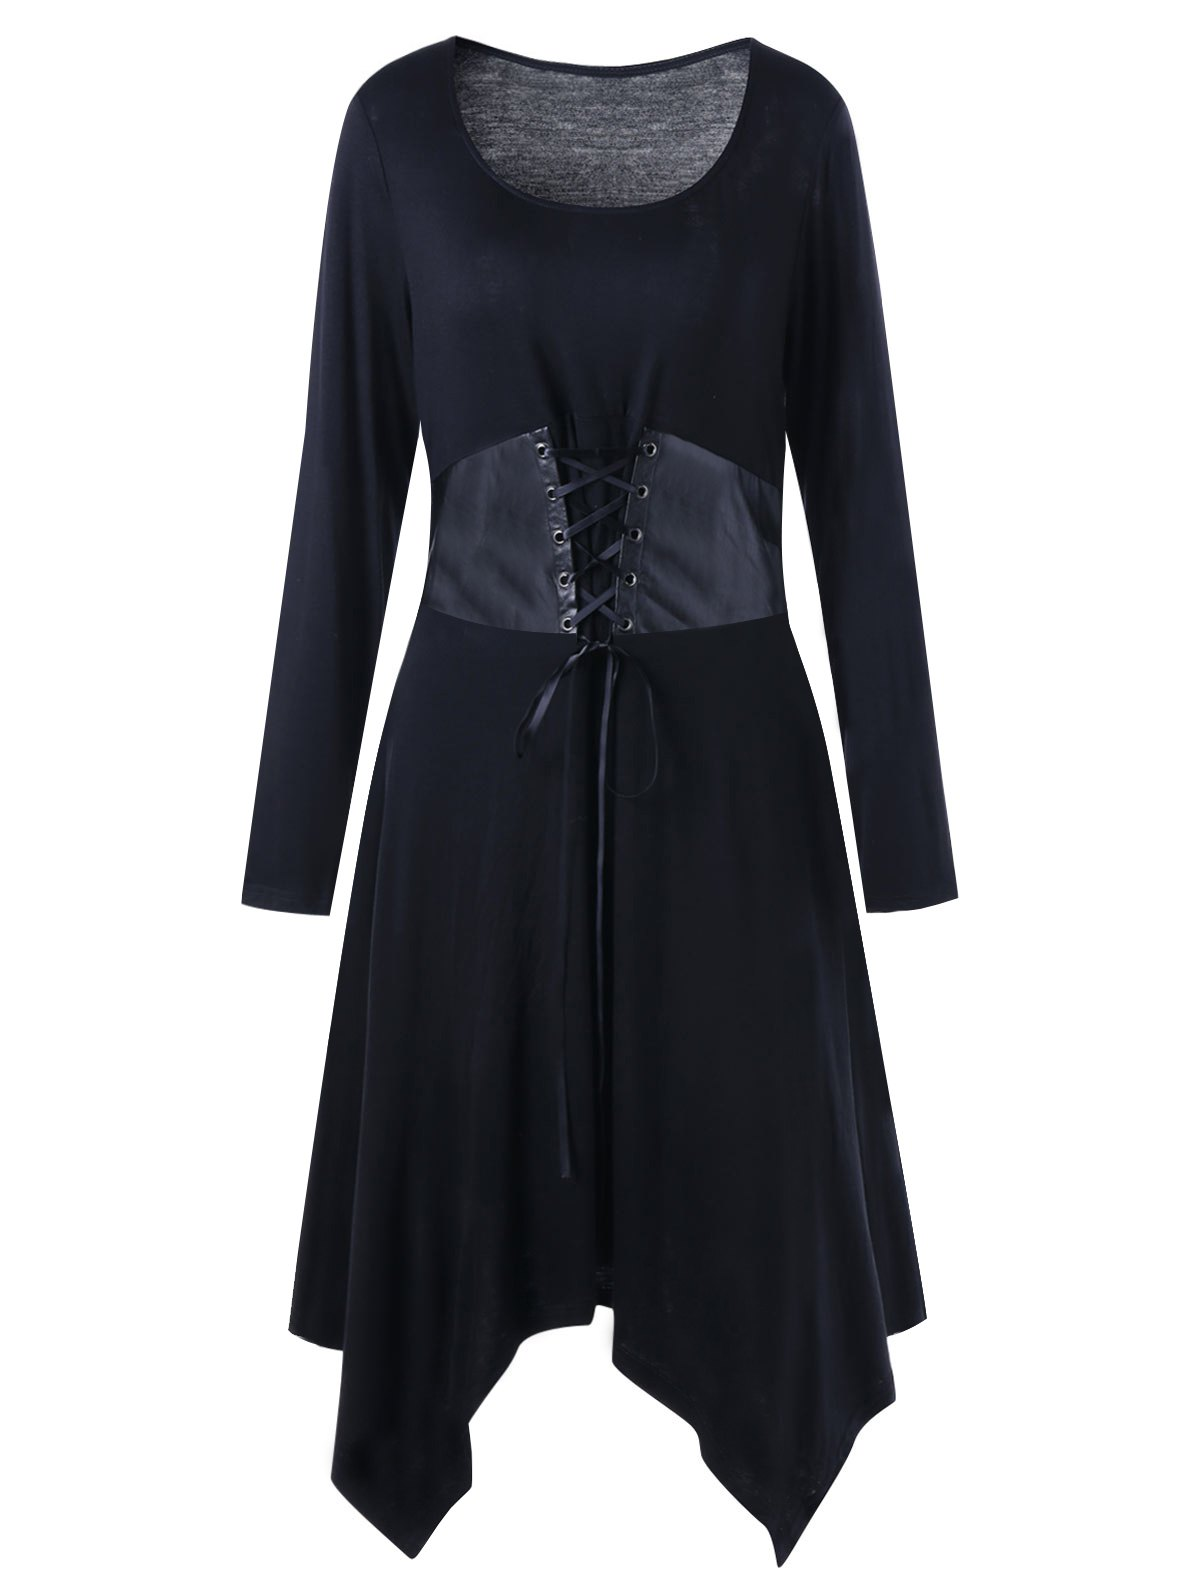 Long Sleeve Belted Plus Size Handkerchief DressWOMEN<br><br>Size: 2XL; Color: BLACK; Style: Casual; Material: Polyester,Spandex; Silhouette: Asymmetrical; Dresses Length: Mid-Calf; Neckline: Scoop Neck; Sleeve Length: Long Sleeves; Waist: Empire; Embellishment: Criss-Cross; Pattern Type: Solid Color; Elasticity: Elastic; With Belt: No; Season: Fall,Spring,Winter; Weight: 0.3800kg; Package Contents: 1 x Dress;